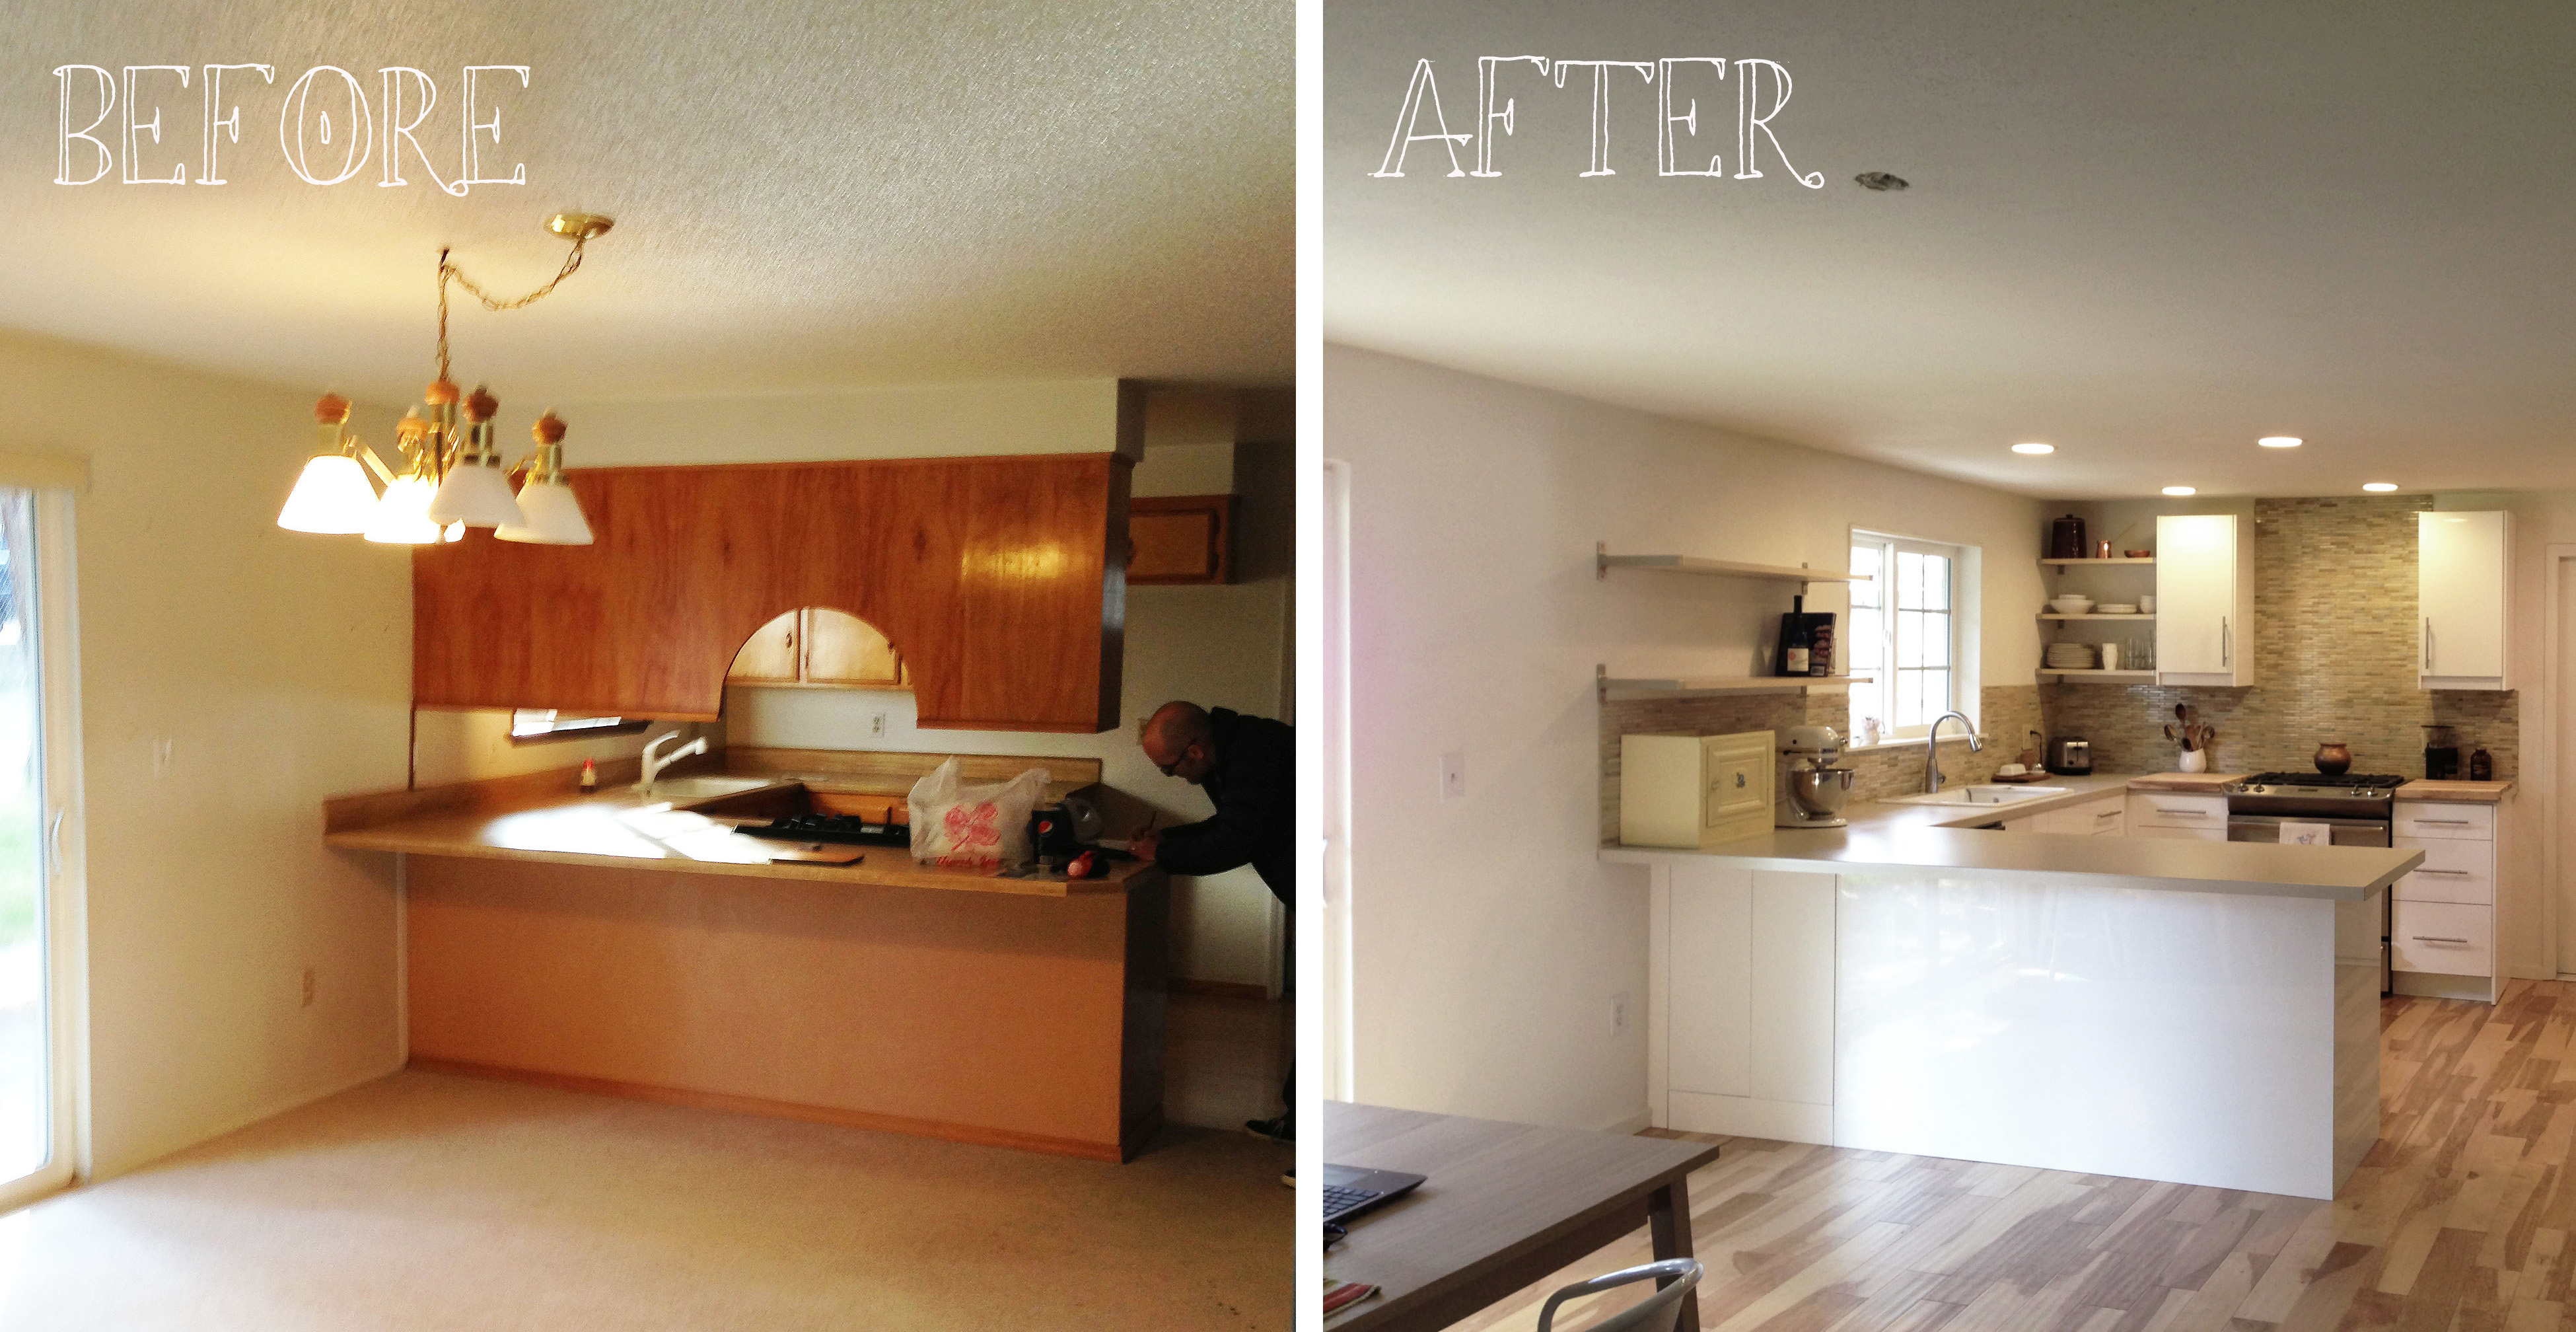 Kitchen before after this bendable life for Kitchen remodel before after